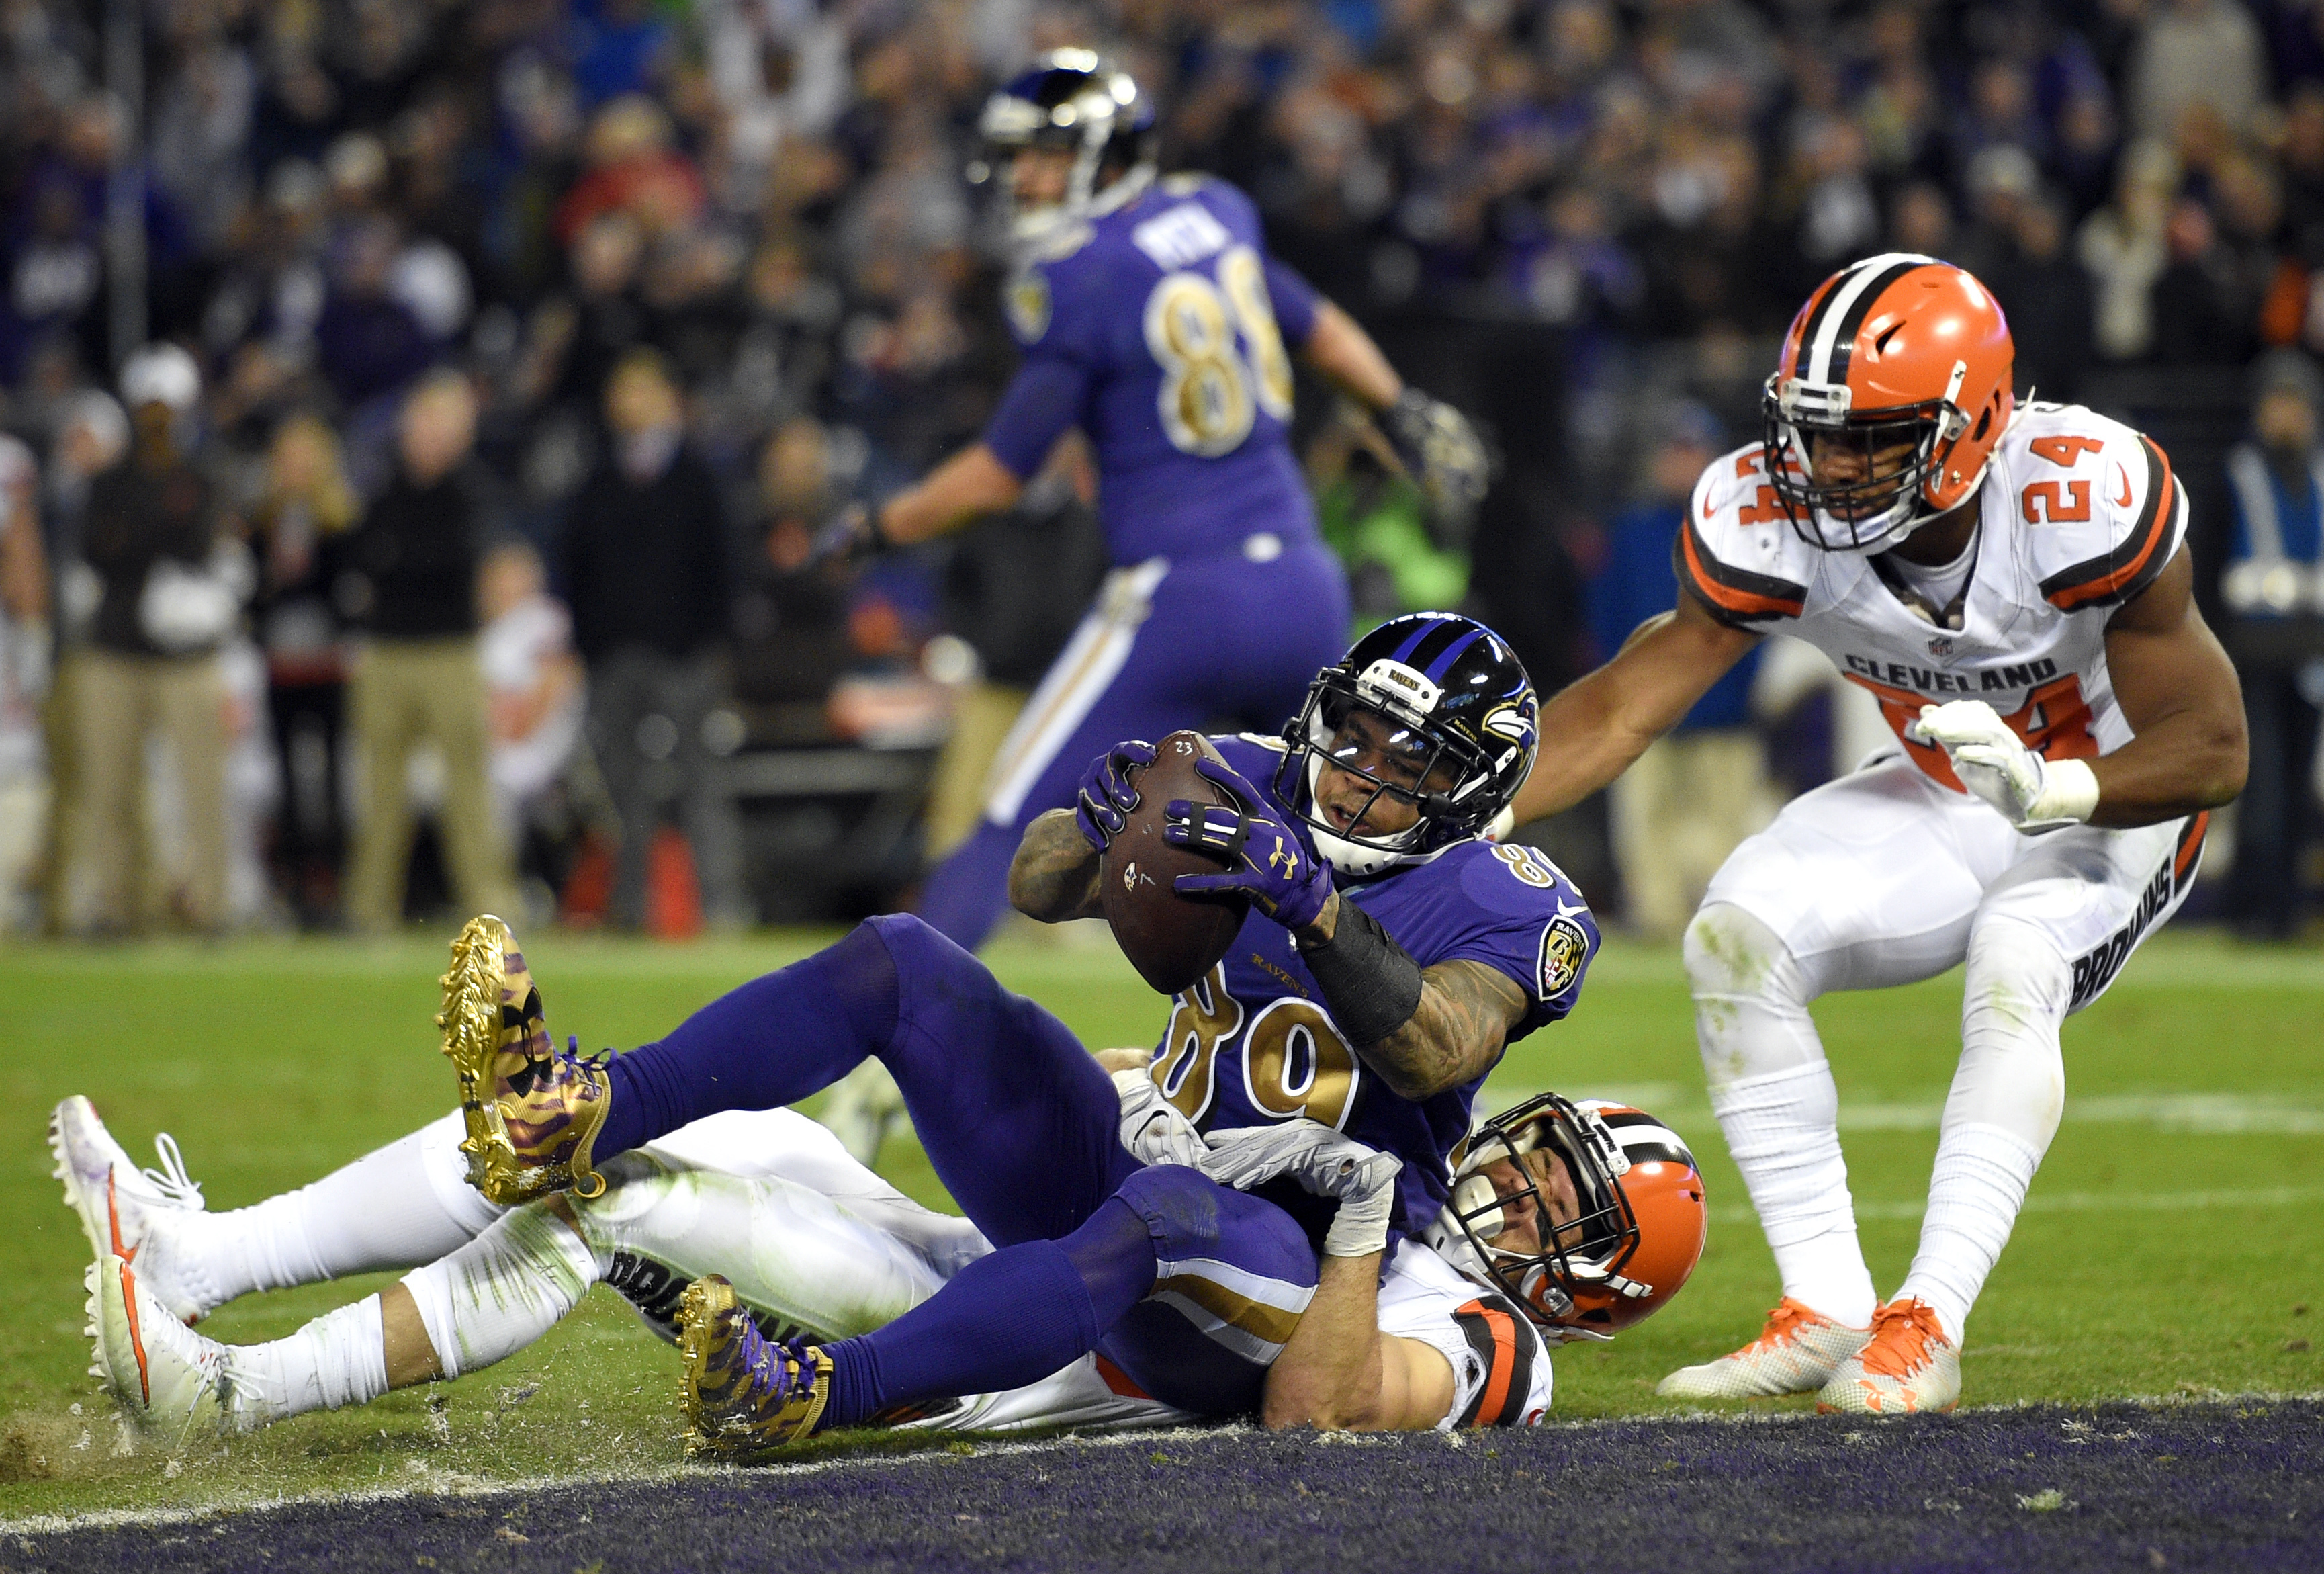 Baltimore Ravens wide receiver Steve Smith (89) scores a touchdown against Cleveland Browns defensive back Ed Reynolds II, bottom, and strong safety Ibraheim Campbell in the second half an NFL football game, Thursday, Nov. 10, 2016, in Baltimore. (AP Phot